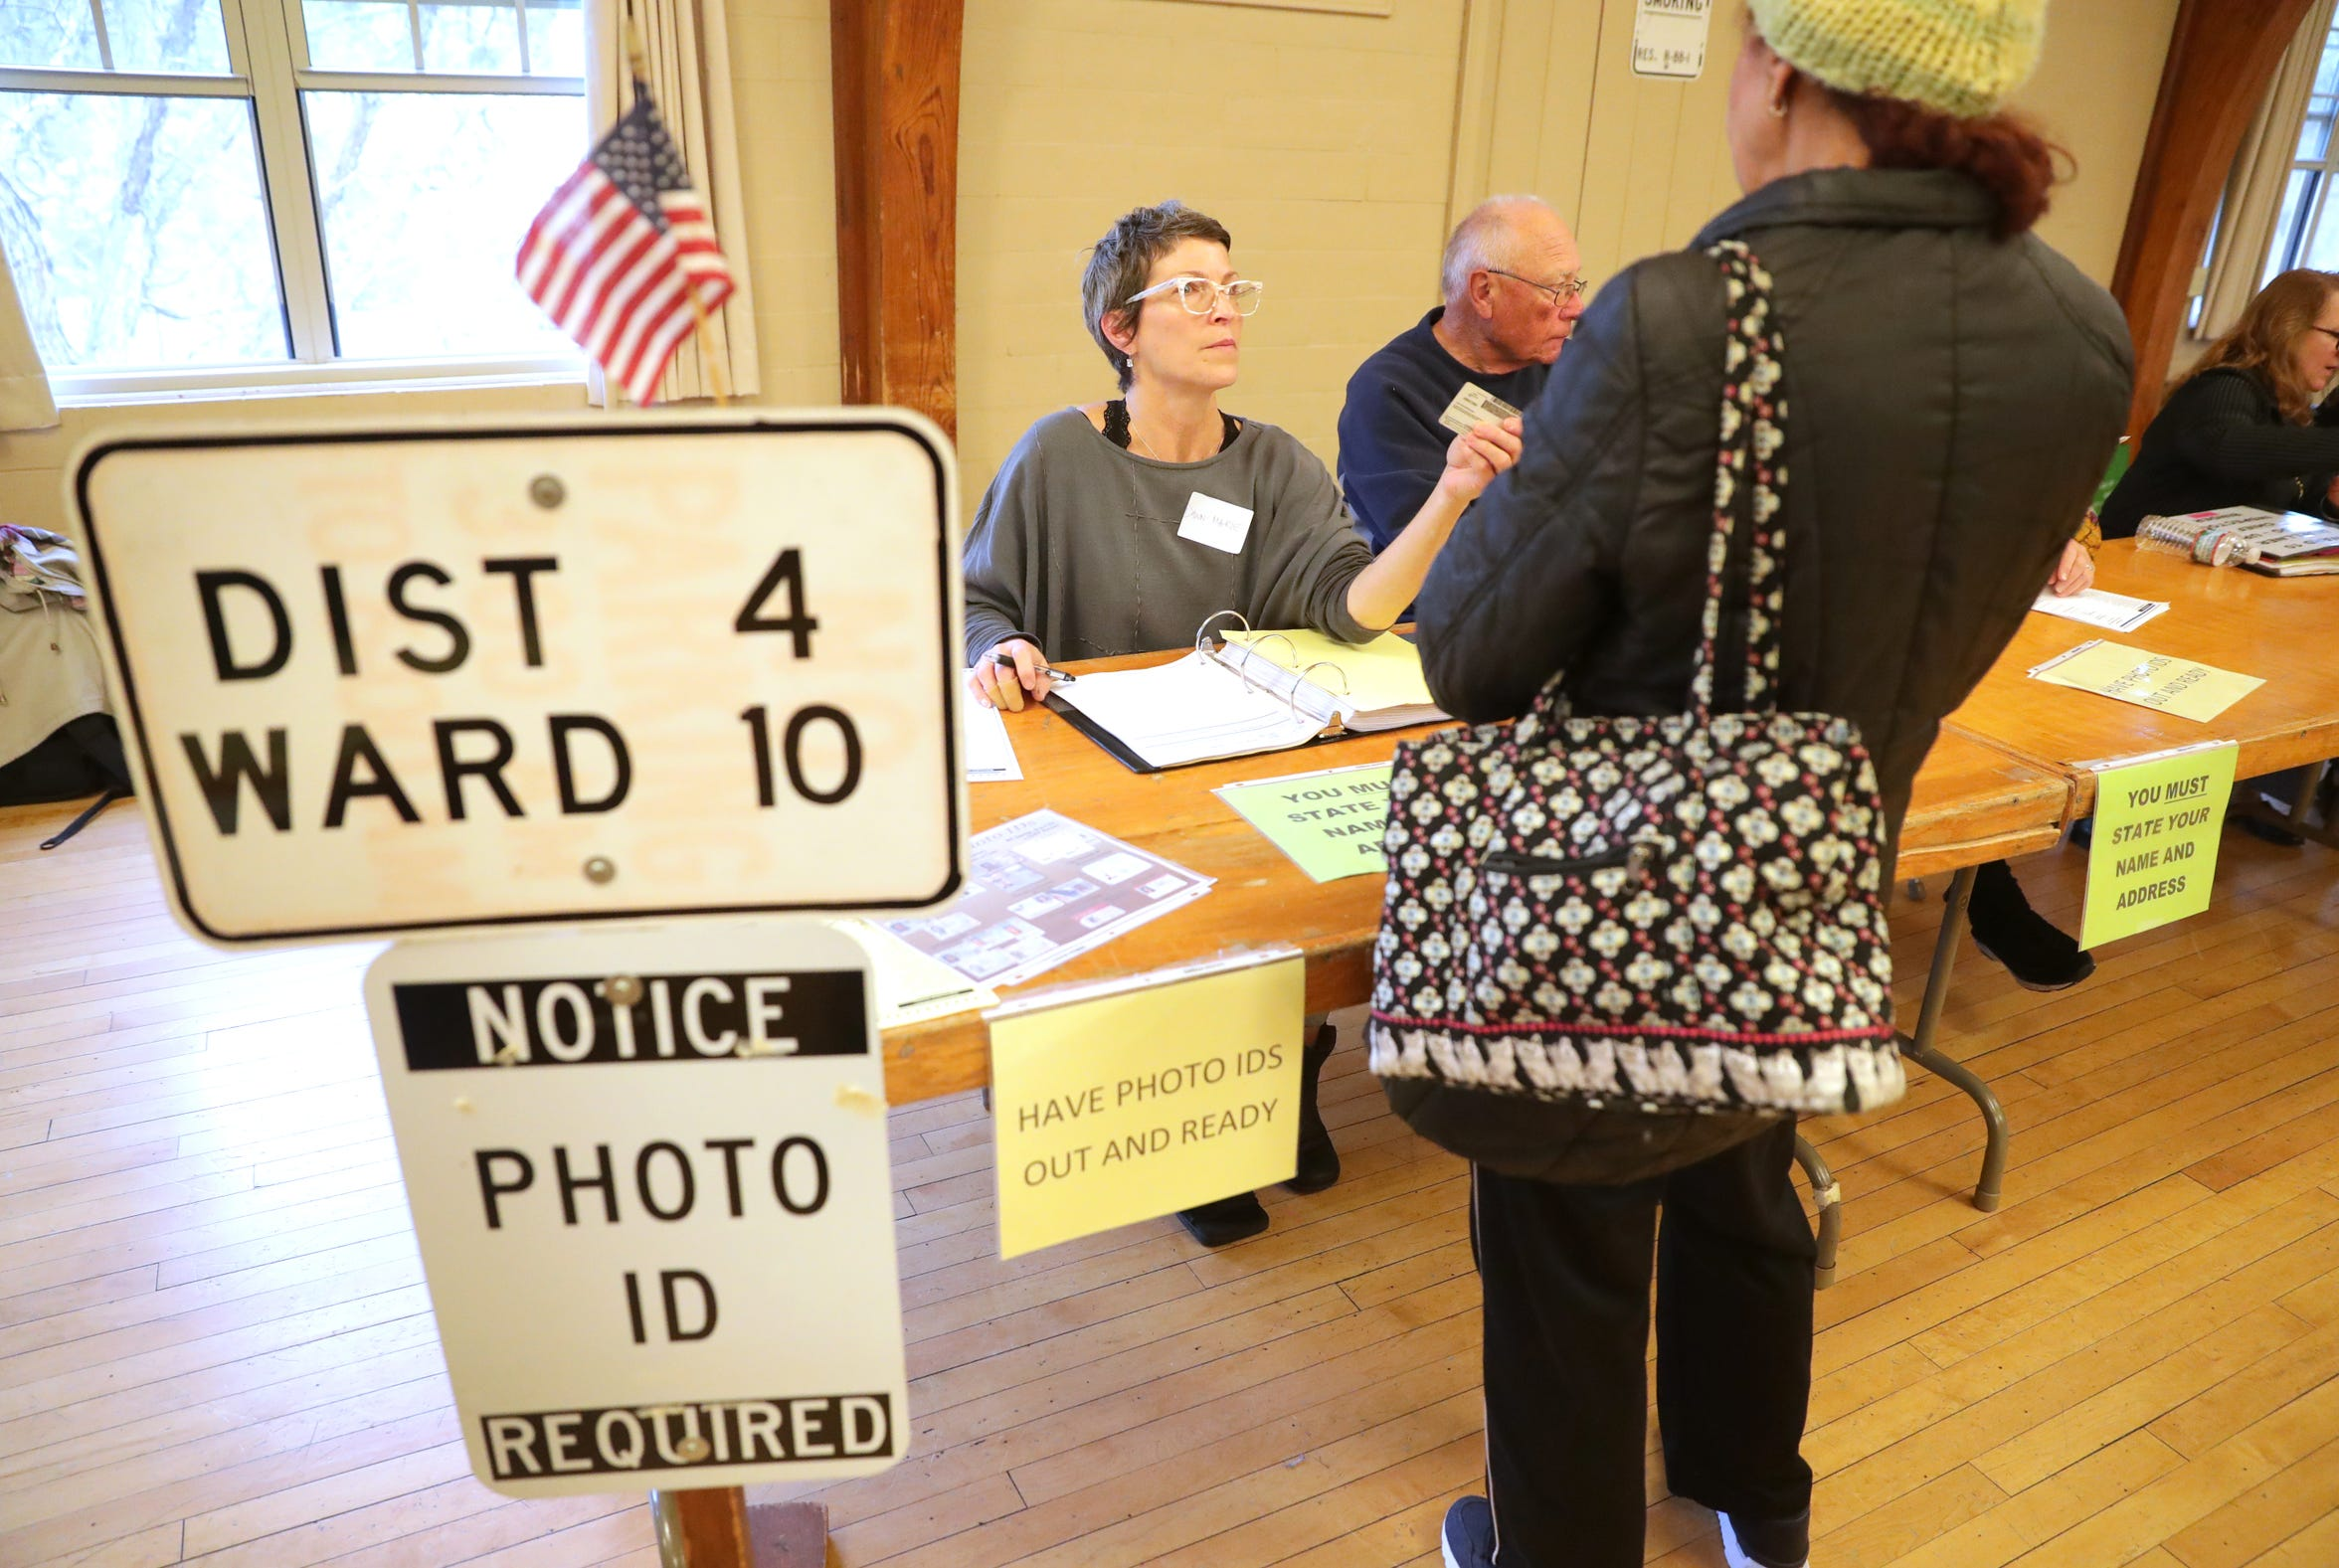 Poll worker Dawn-Marie Metz, checks voters identification at the Hart Park Senior Center in Wauwatosa. Voter ID was required for all those wanting to vote. Citizens cast their vote for the midterm election.